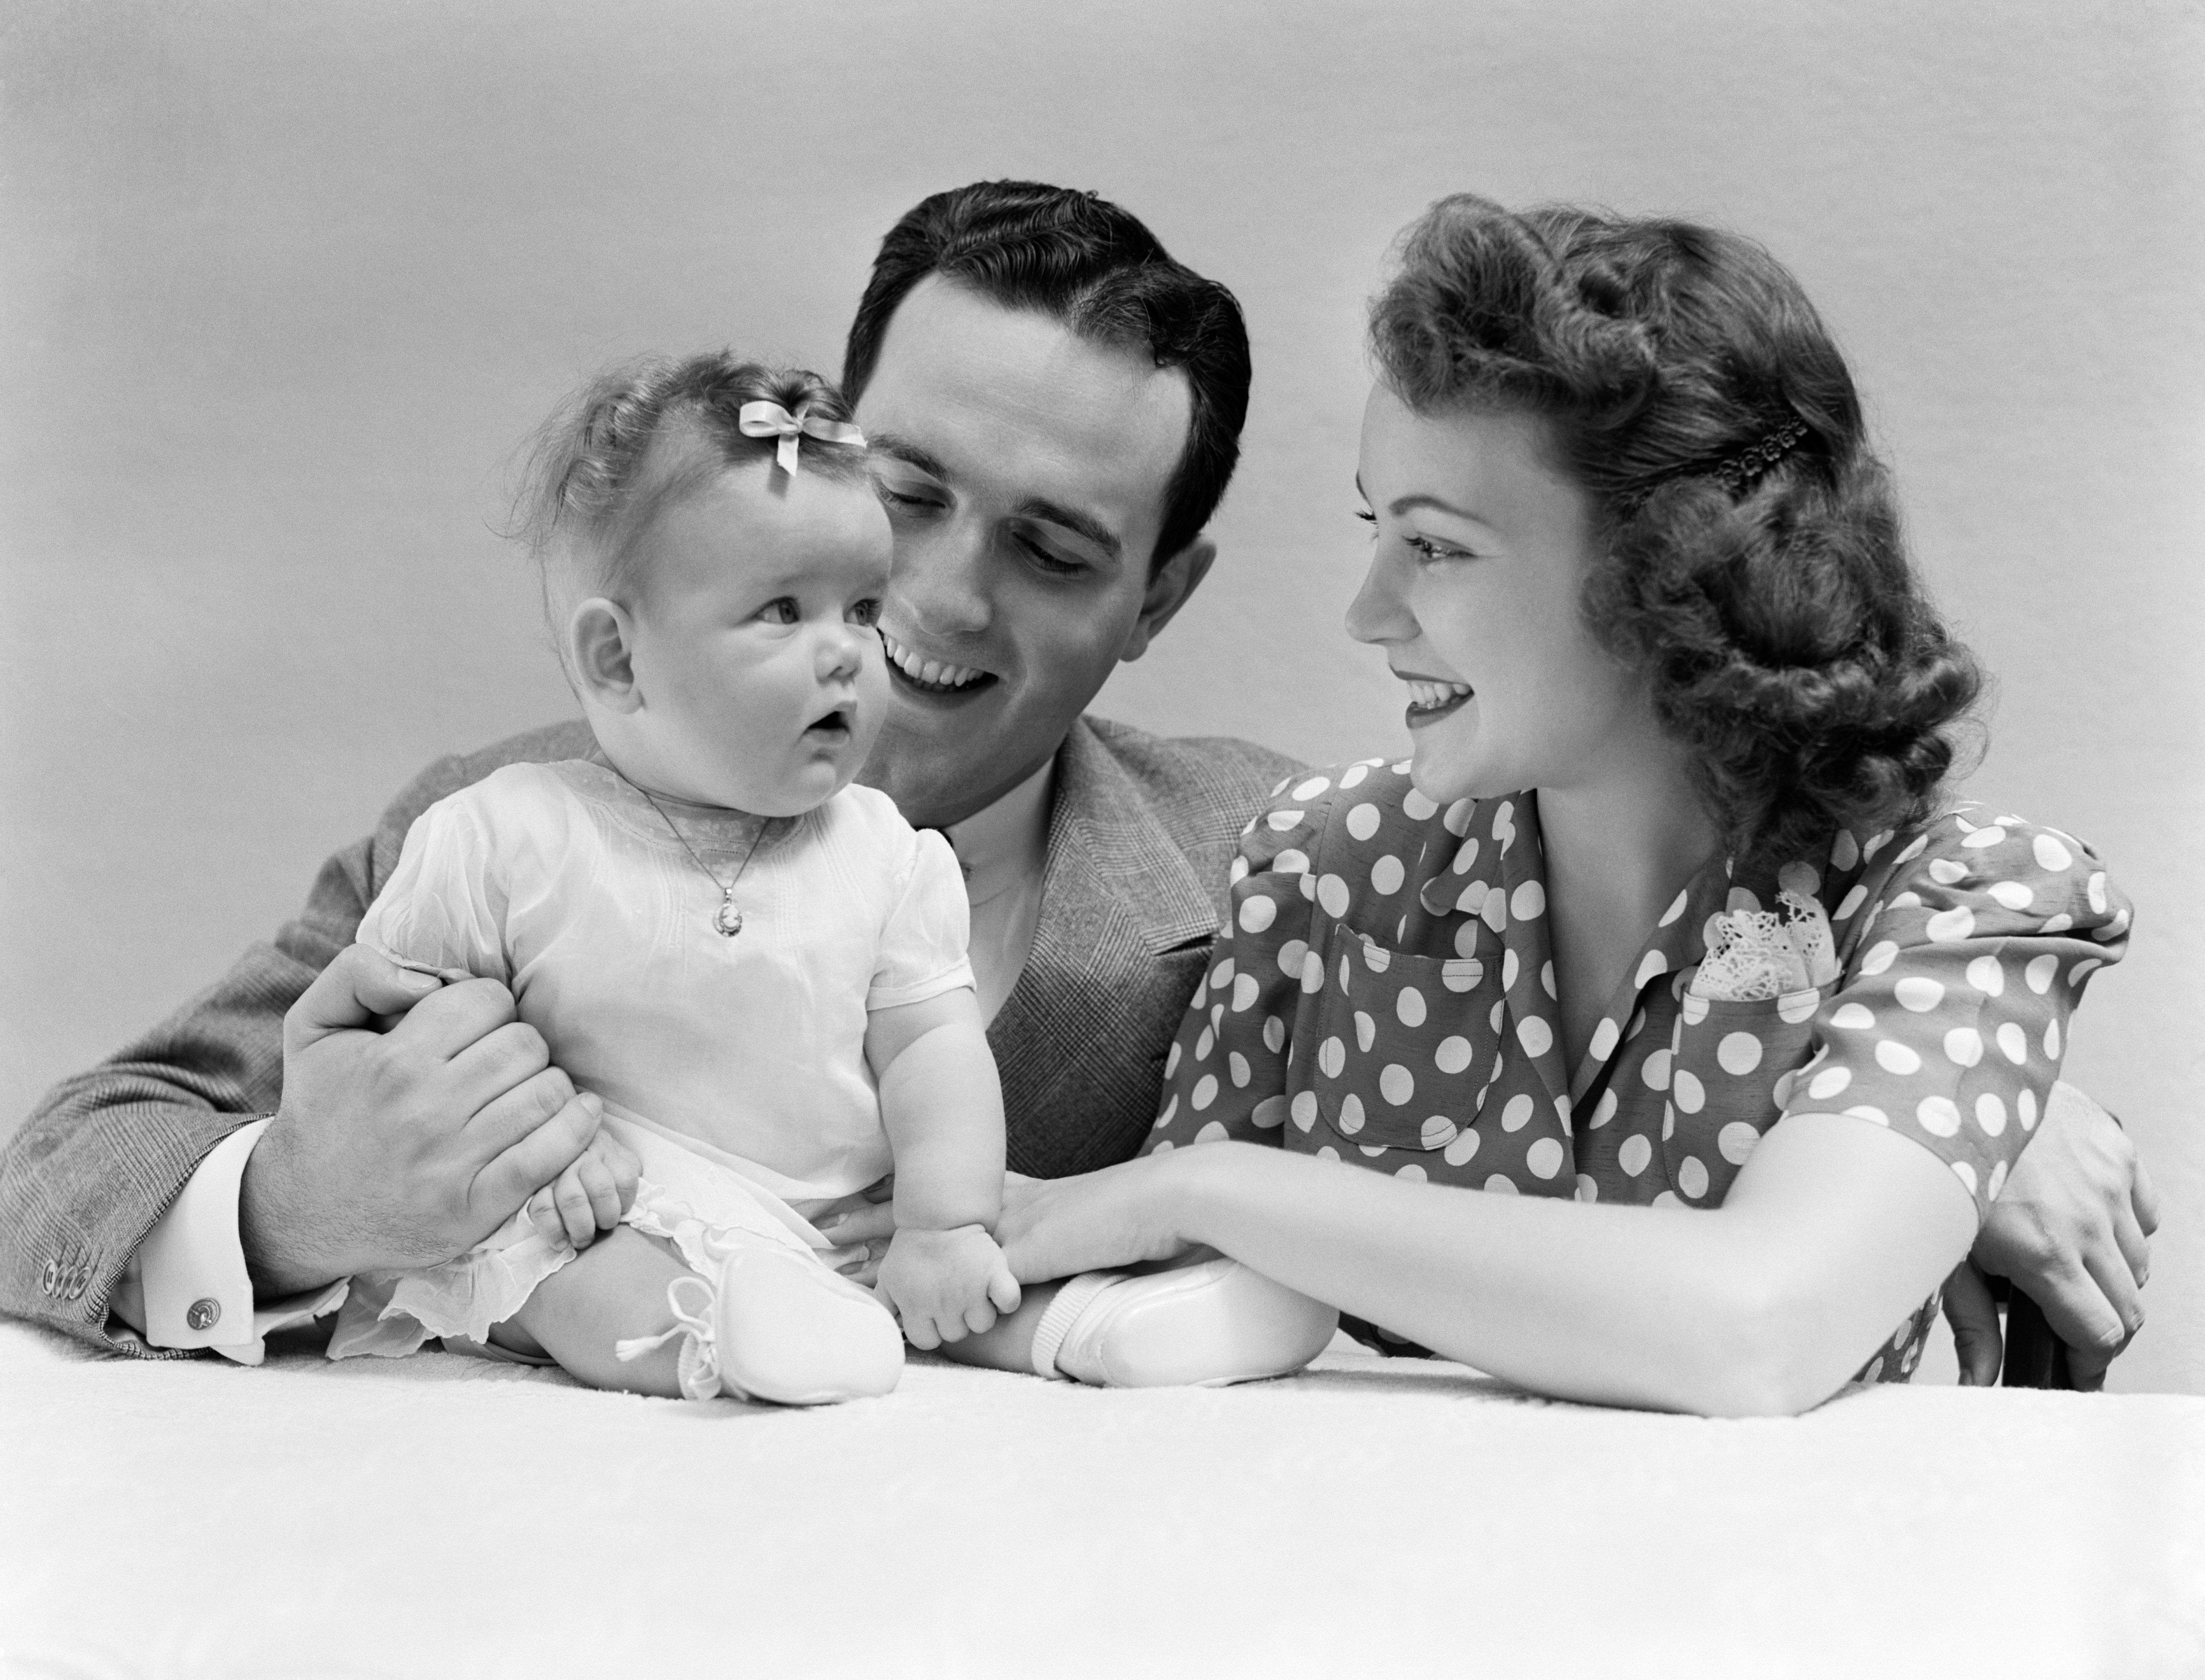 1940s FAMILY PORTRAIT MOTHER FATHER AND BABY  (Photo by H. Armstrong Roberts/ClassicStock/Getty Images)